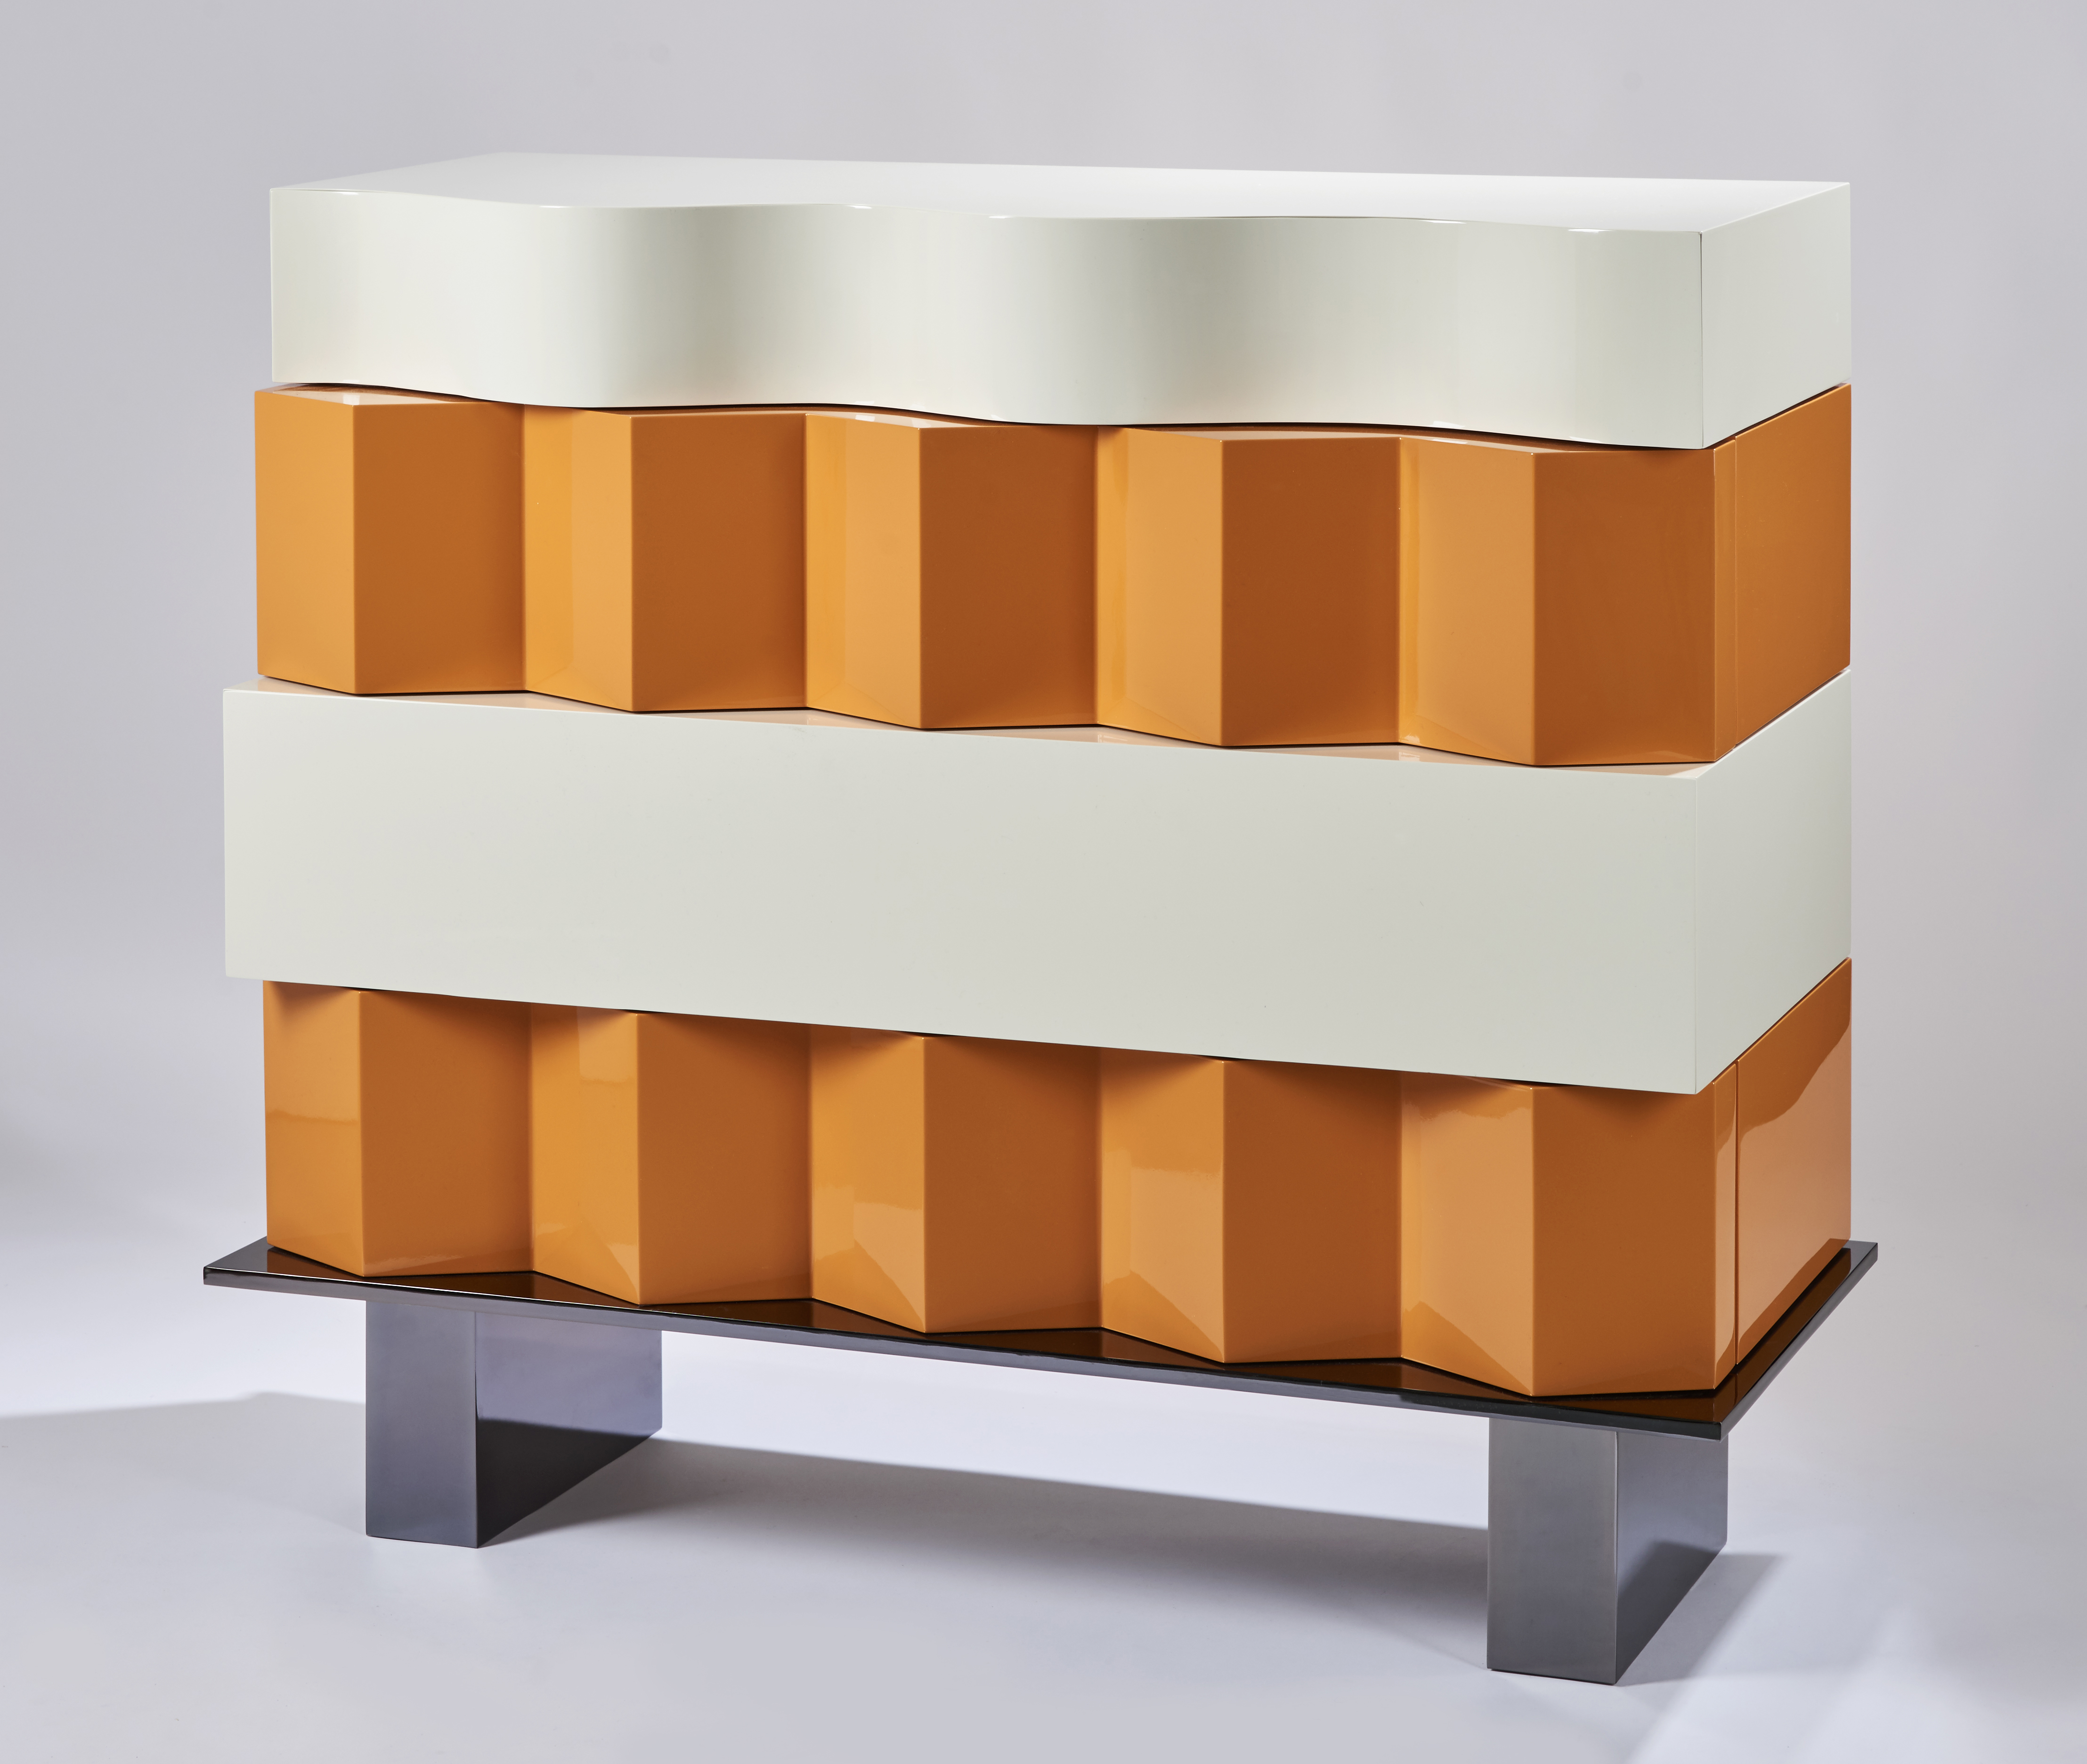 commode-4-strates-01